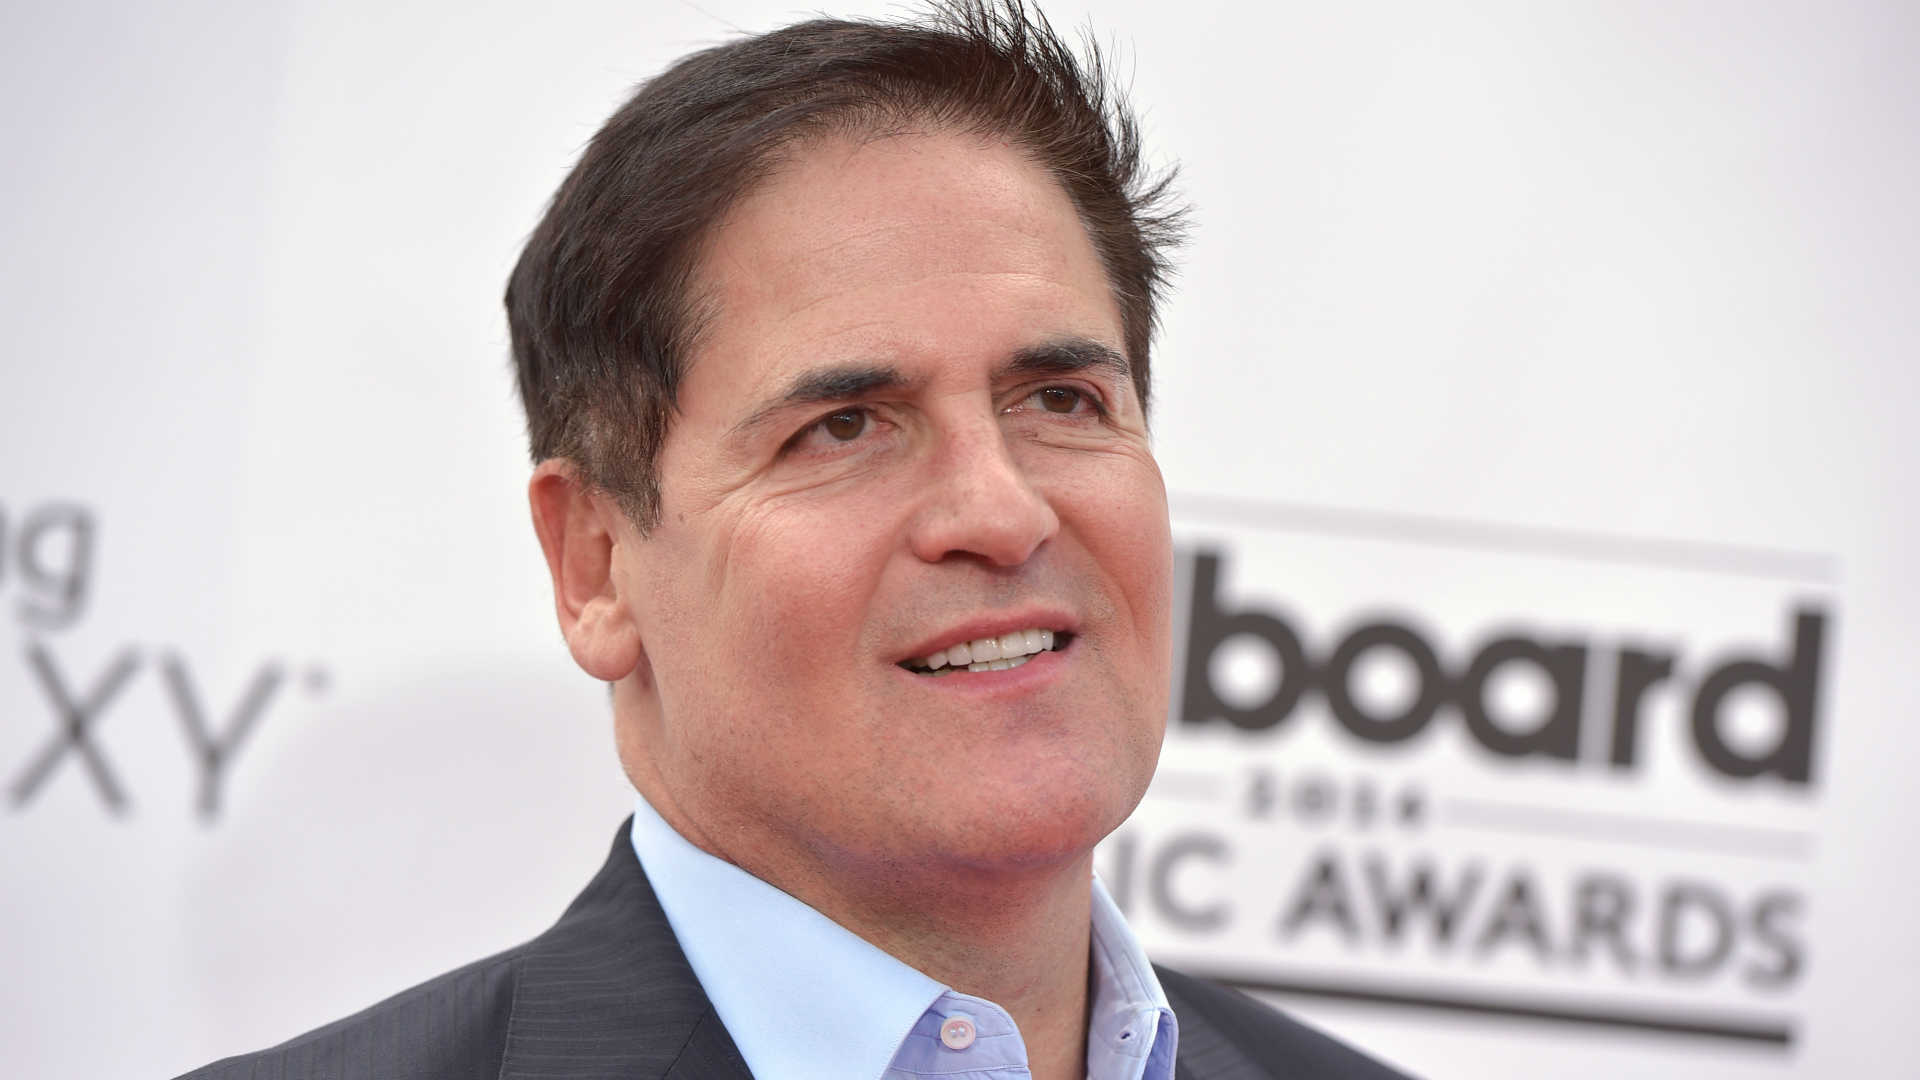 Mark Cuban's plan to save U.S. basketball would wreck it